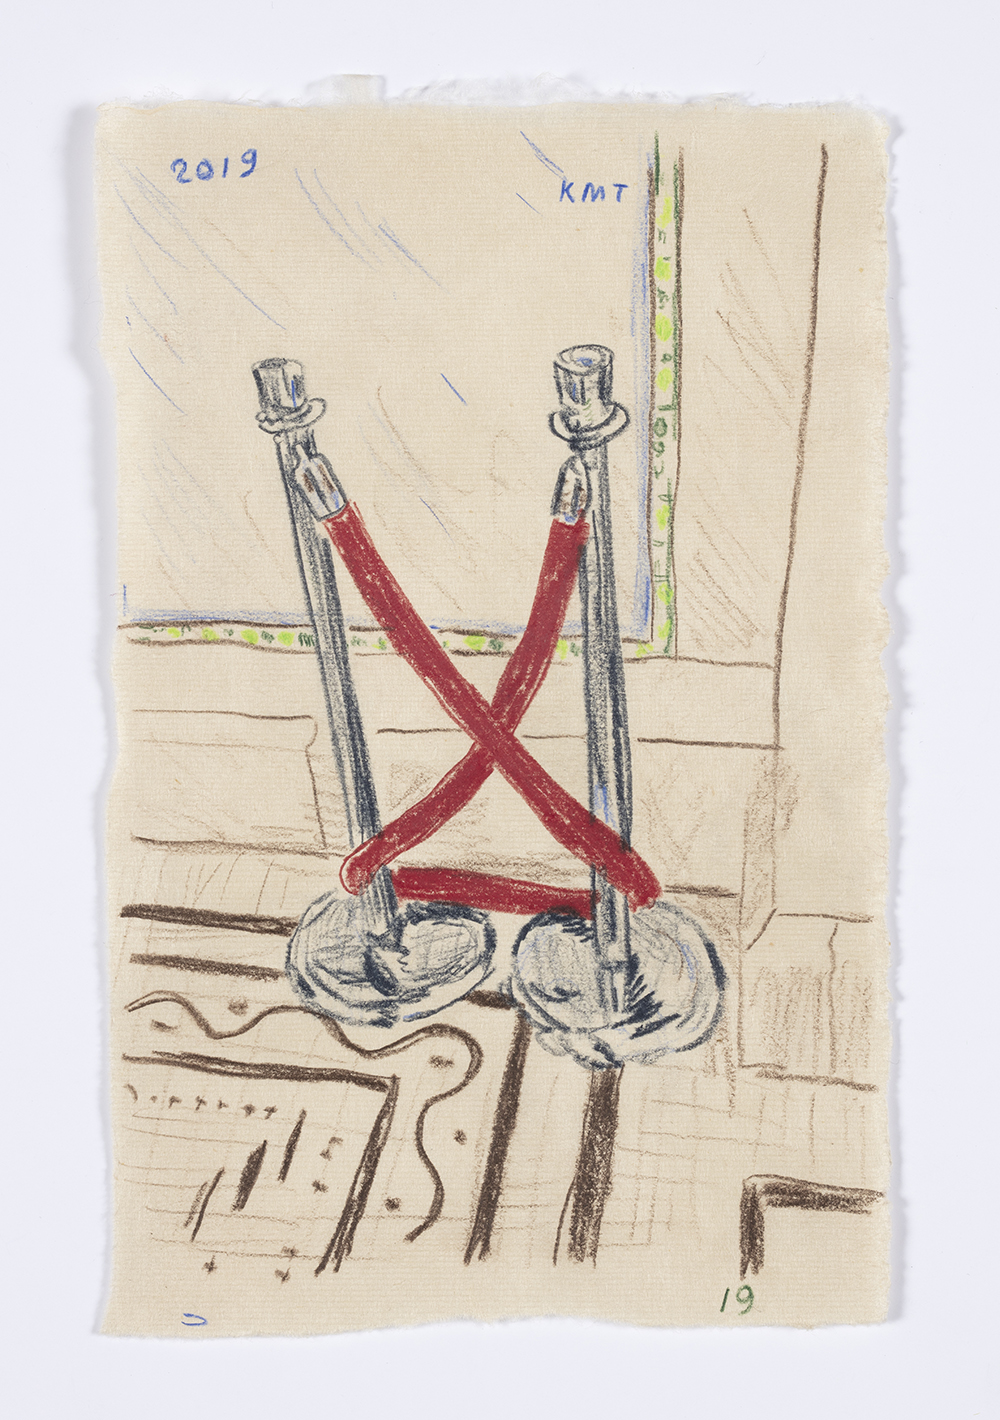 Kevin McNamee-Tweed. <em>Velvet Rope at Chicago Cultural Center</em>, 2019. Graphite and colored pencil on mulberry paper, 8 1/8 x 5 1/4 inches  (20.6 x 13.3 cm)